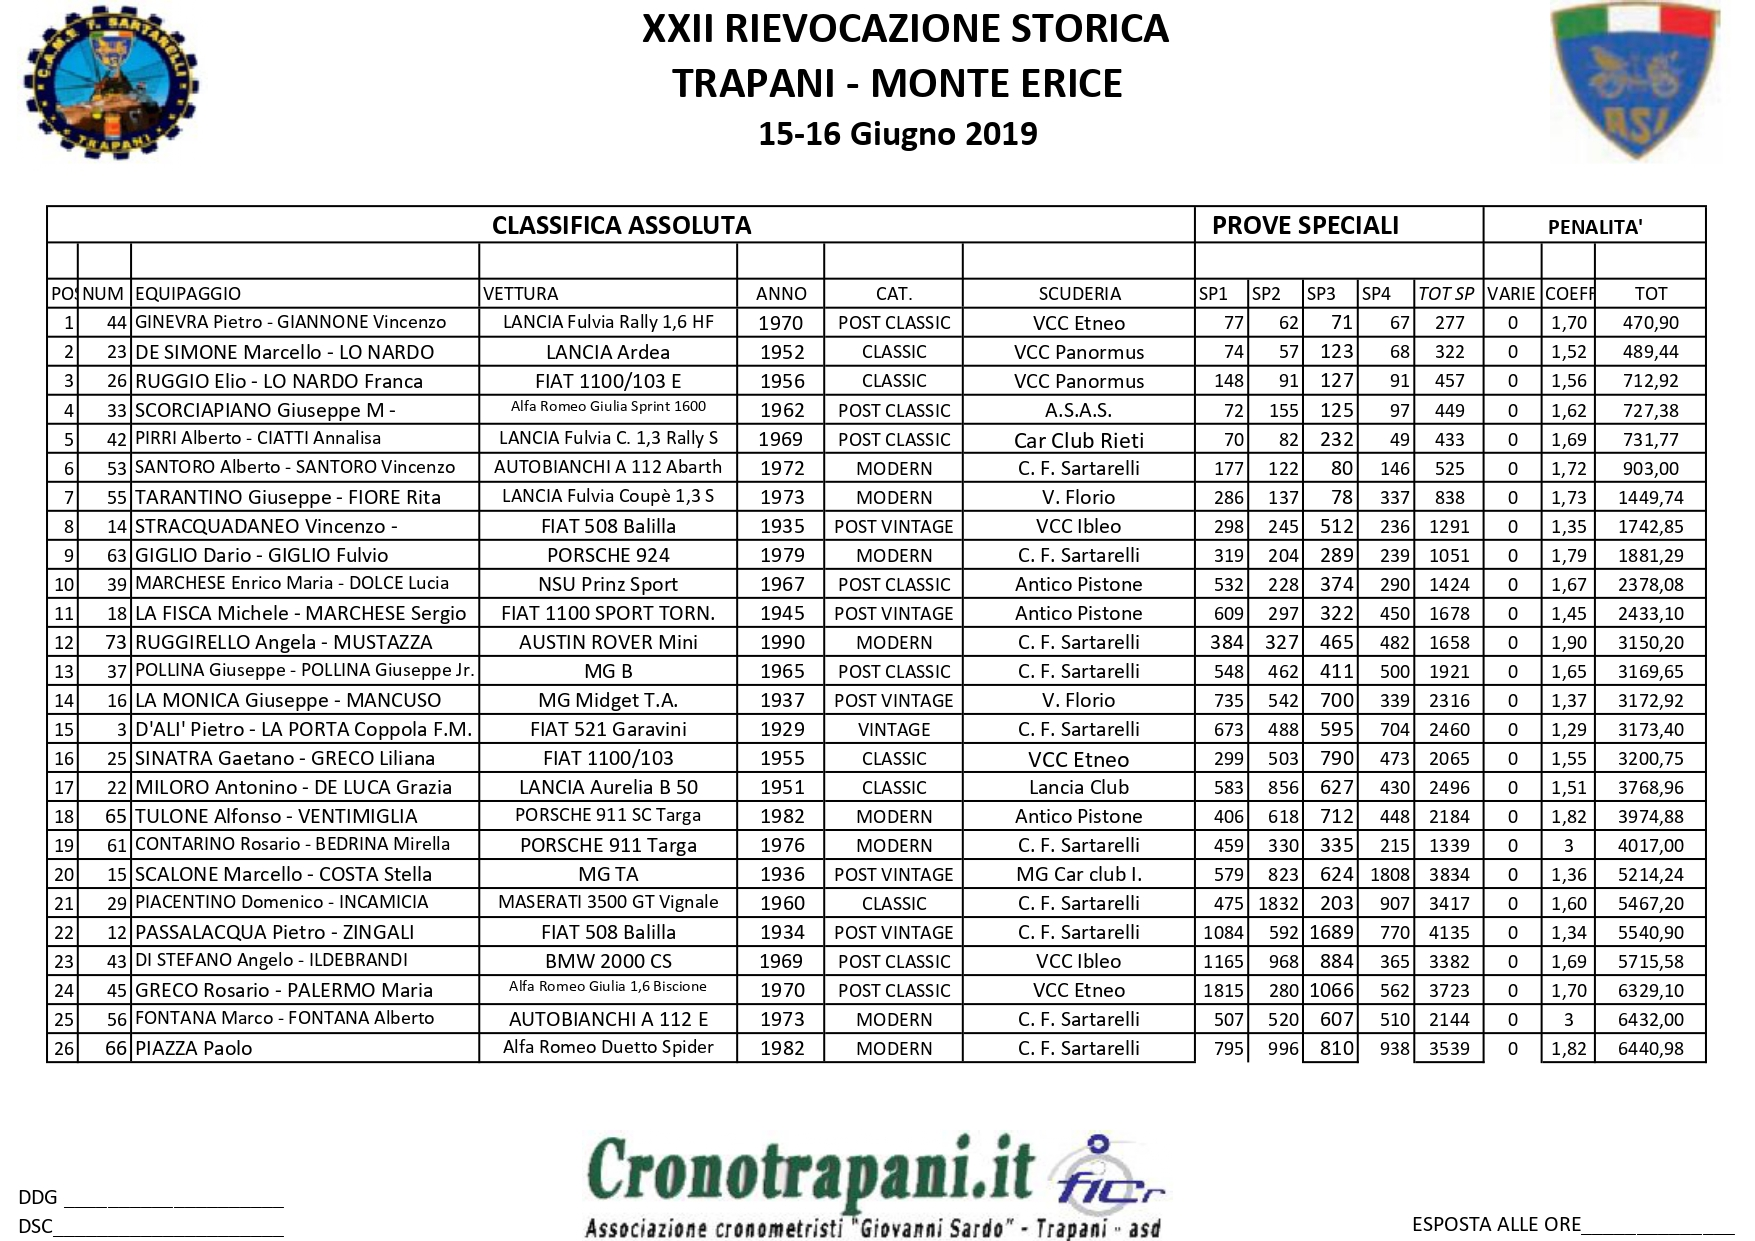 CLASSIFICA ASSOLUTA_page-0001